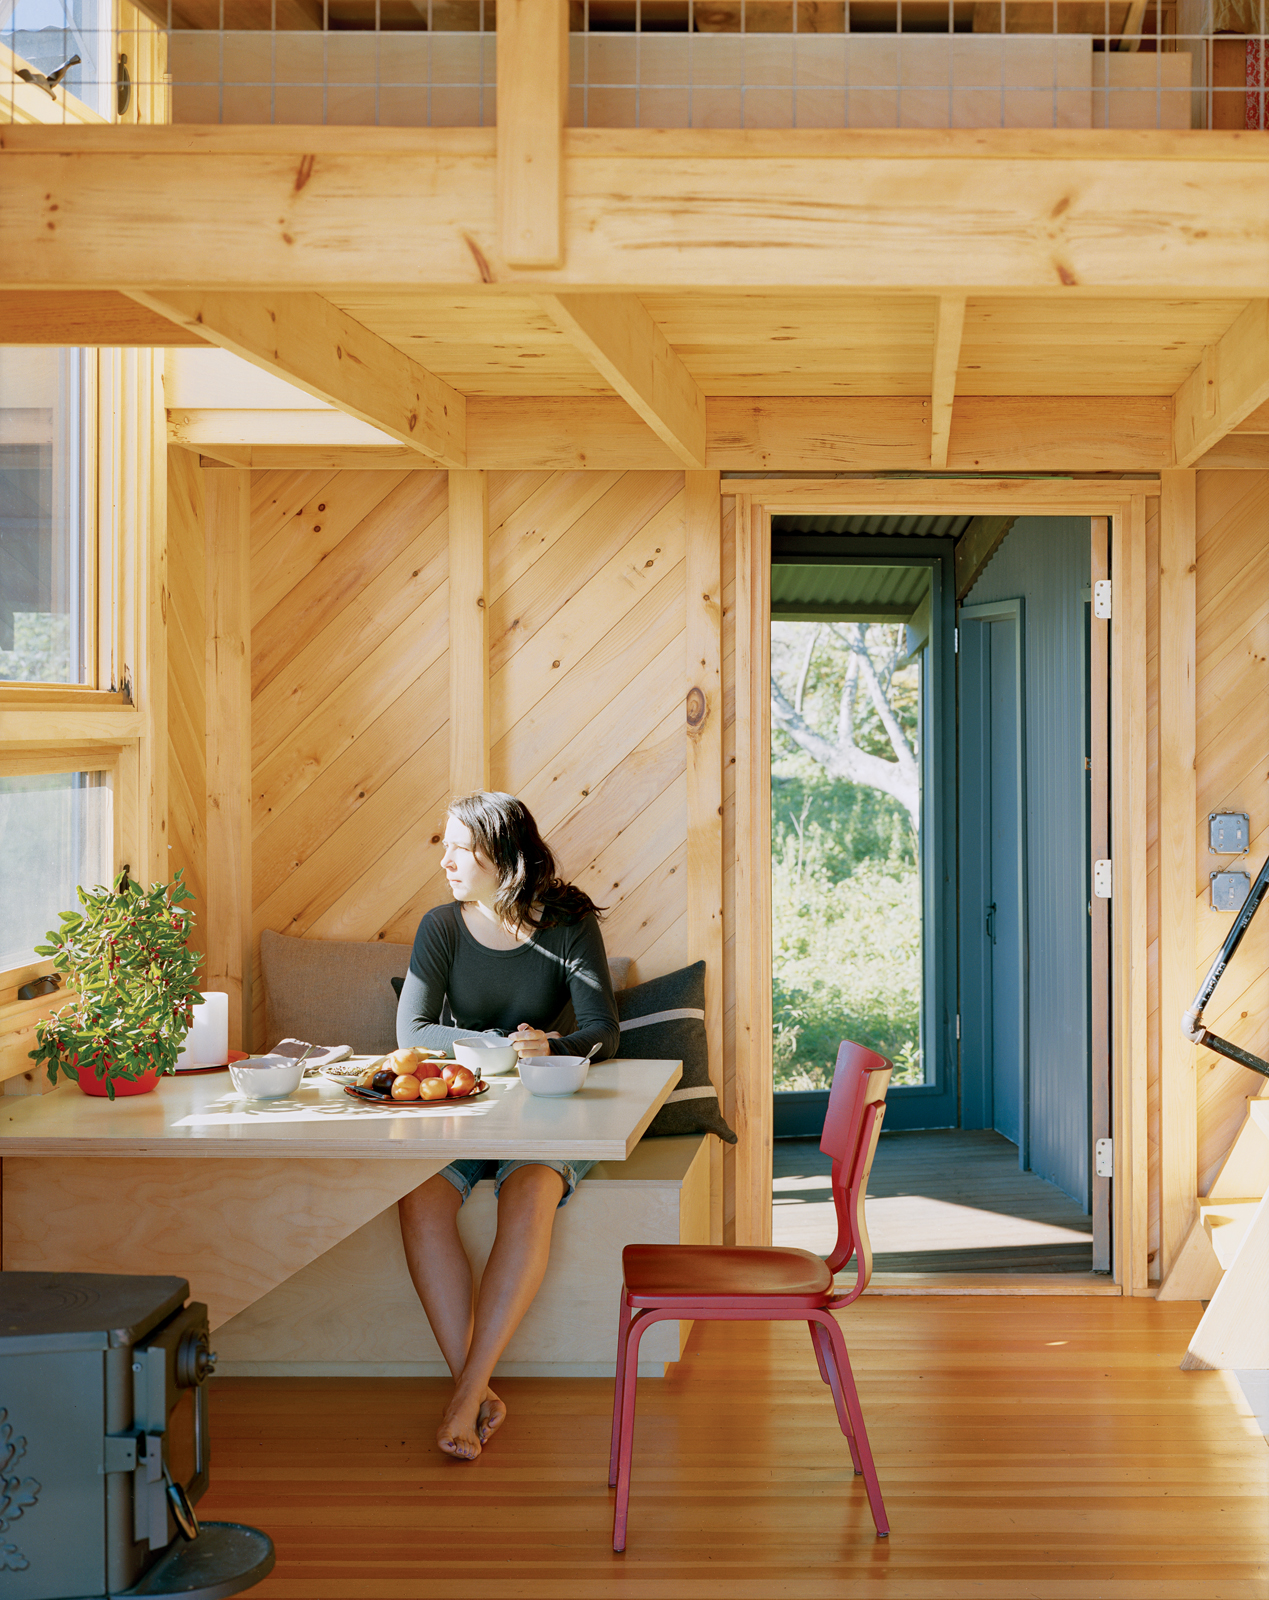 Image source: Dwell. Click for details